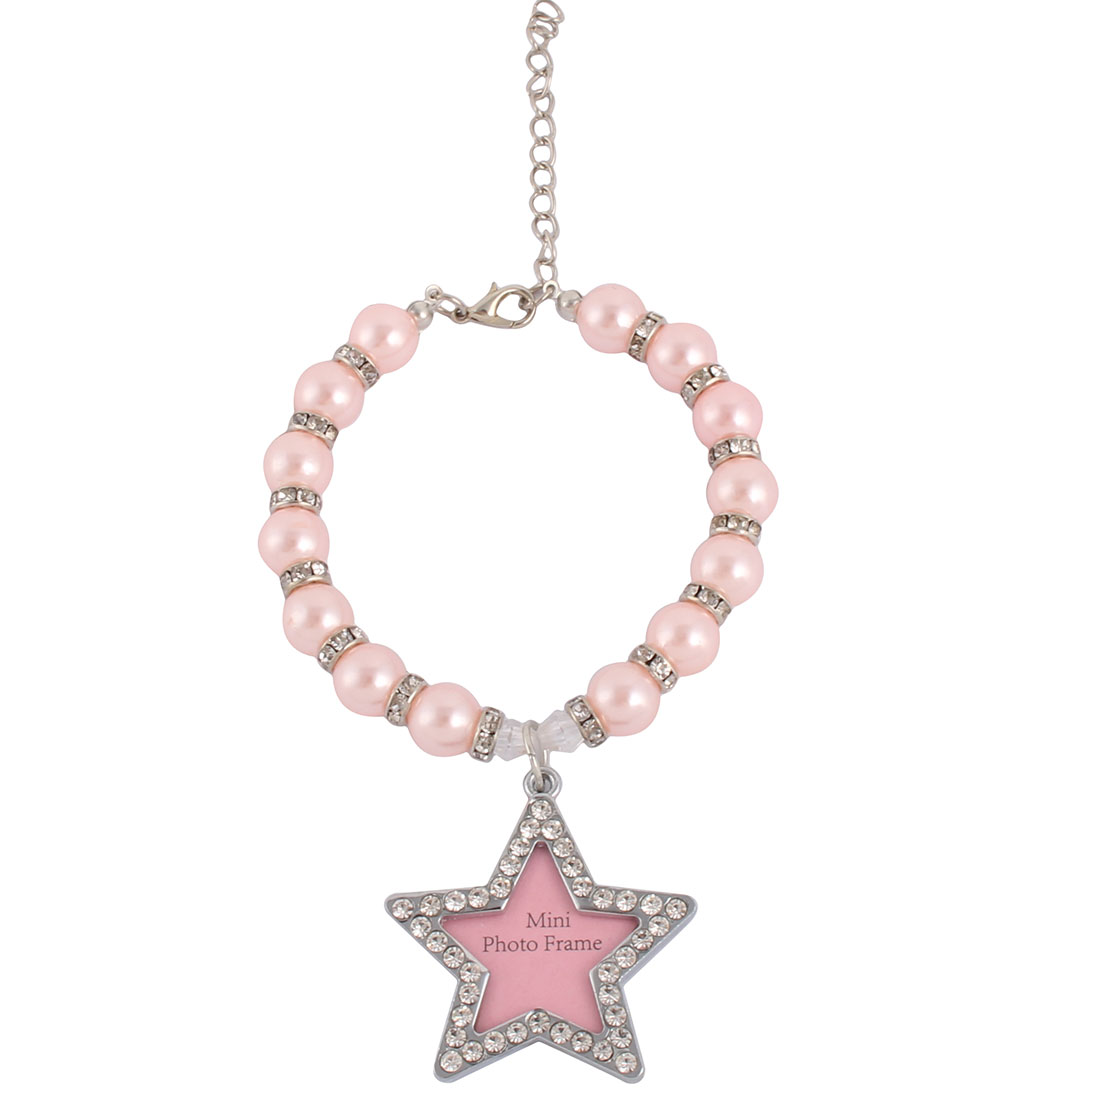 Party Metal Round Bead Linked Star Shaped Photo Frame Design Collar Tag Pet Necklace Pink